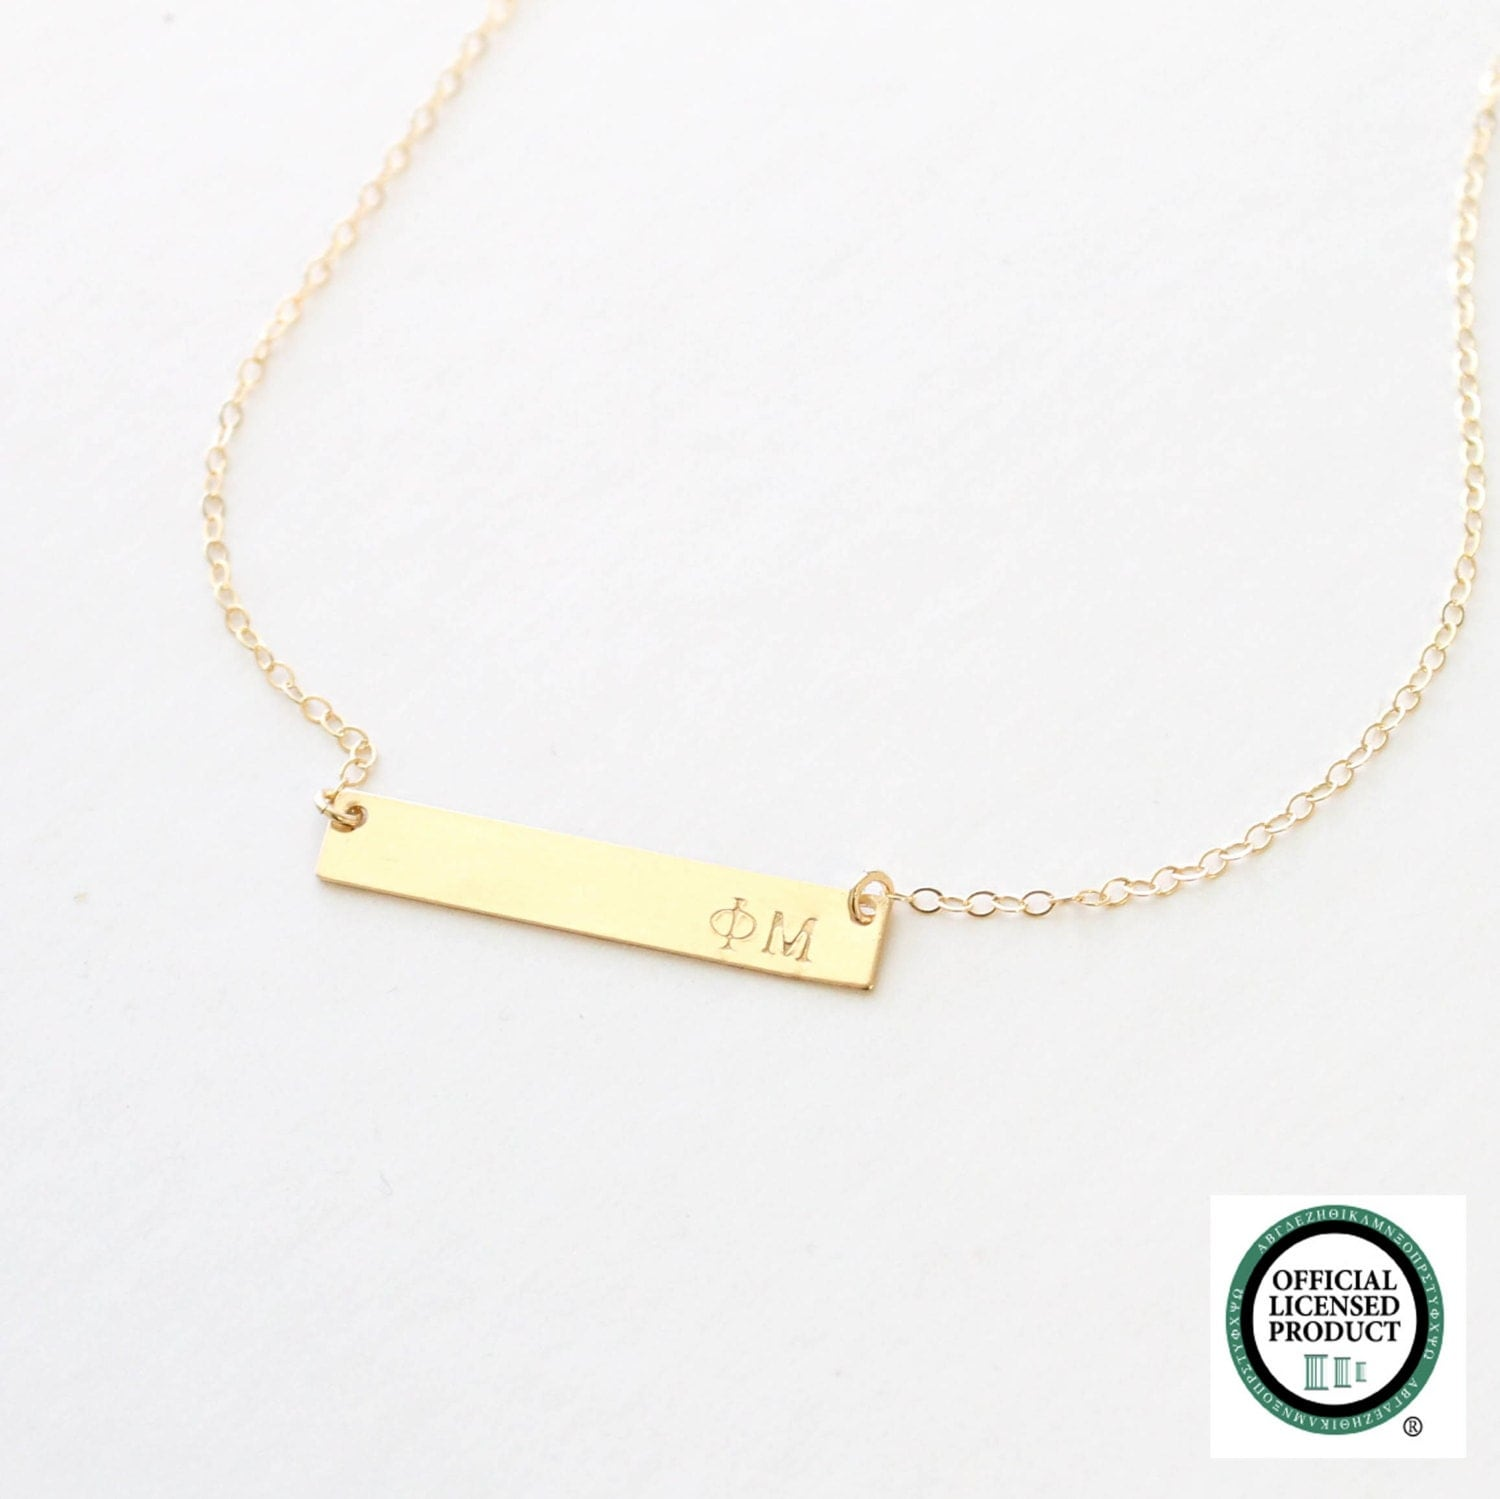 phi mu sorority necklace official licensed by